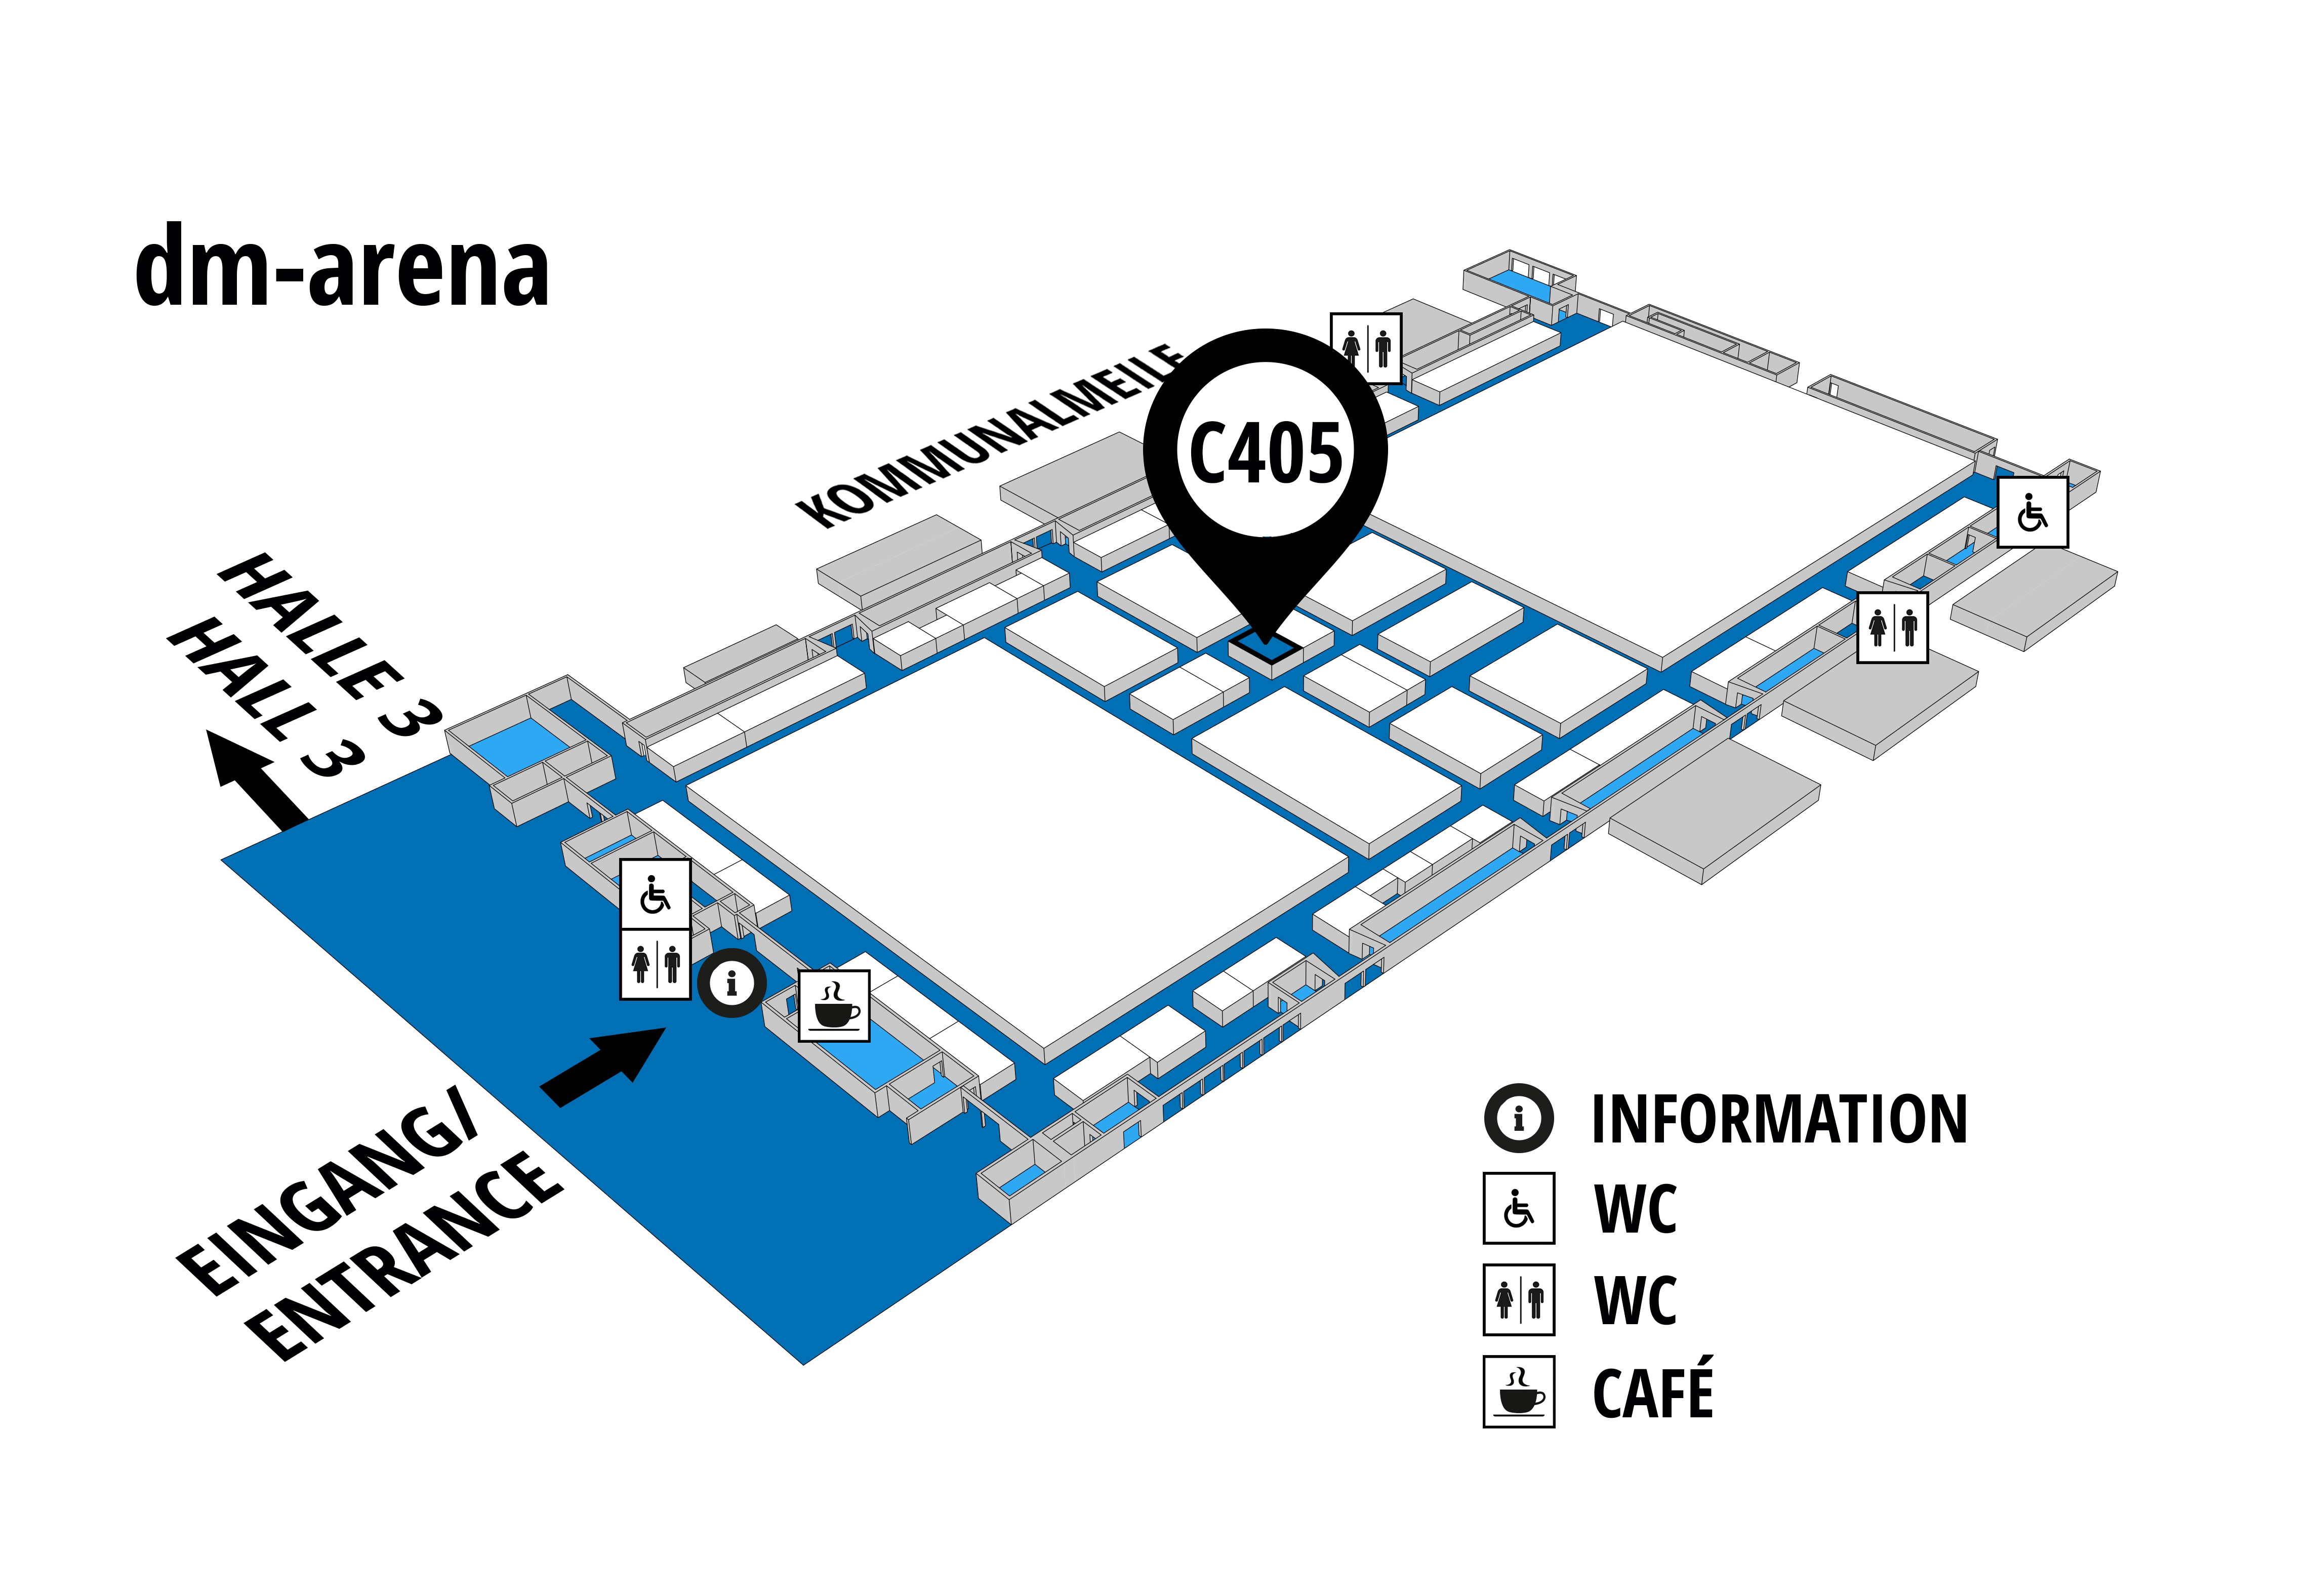 NUFAM 2019 - Trade fair for commercial vehicles hall map (dm-arena): stand C 405